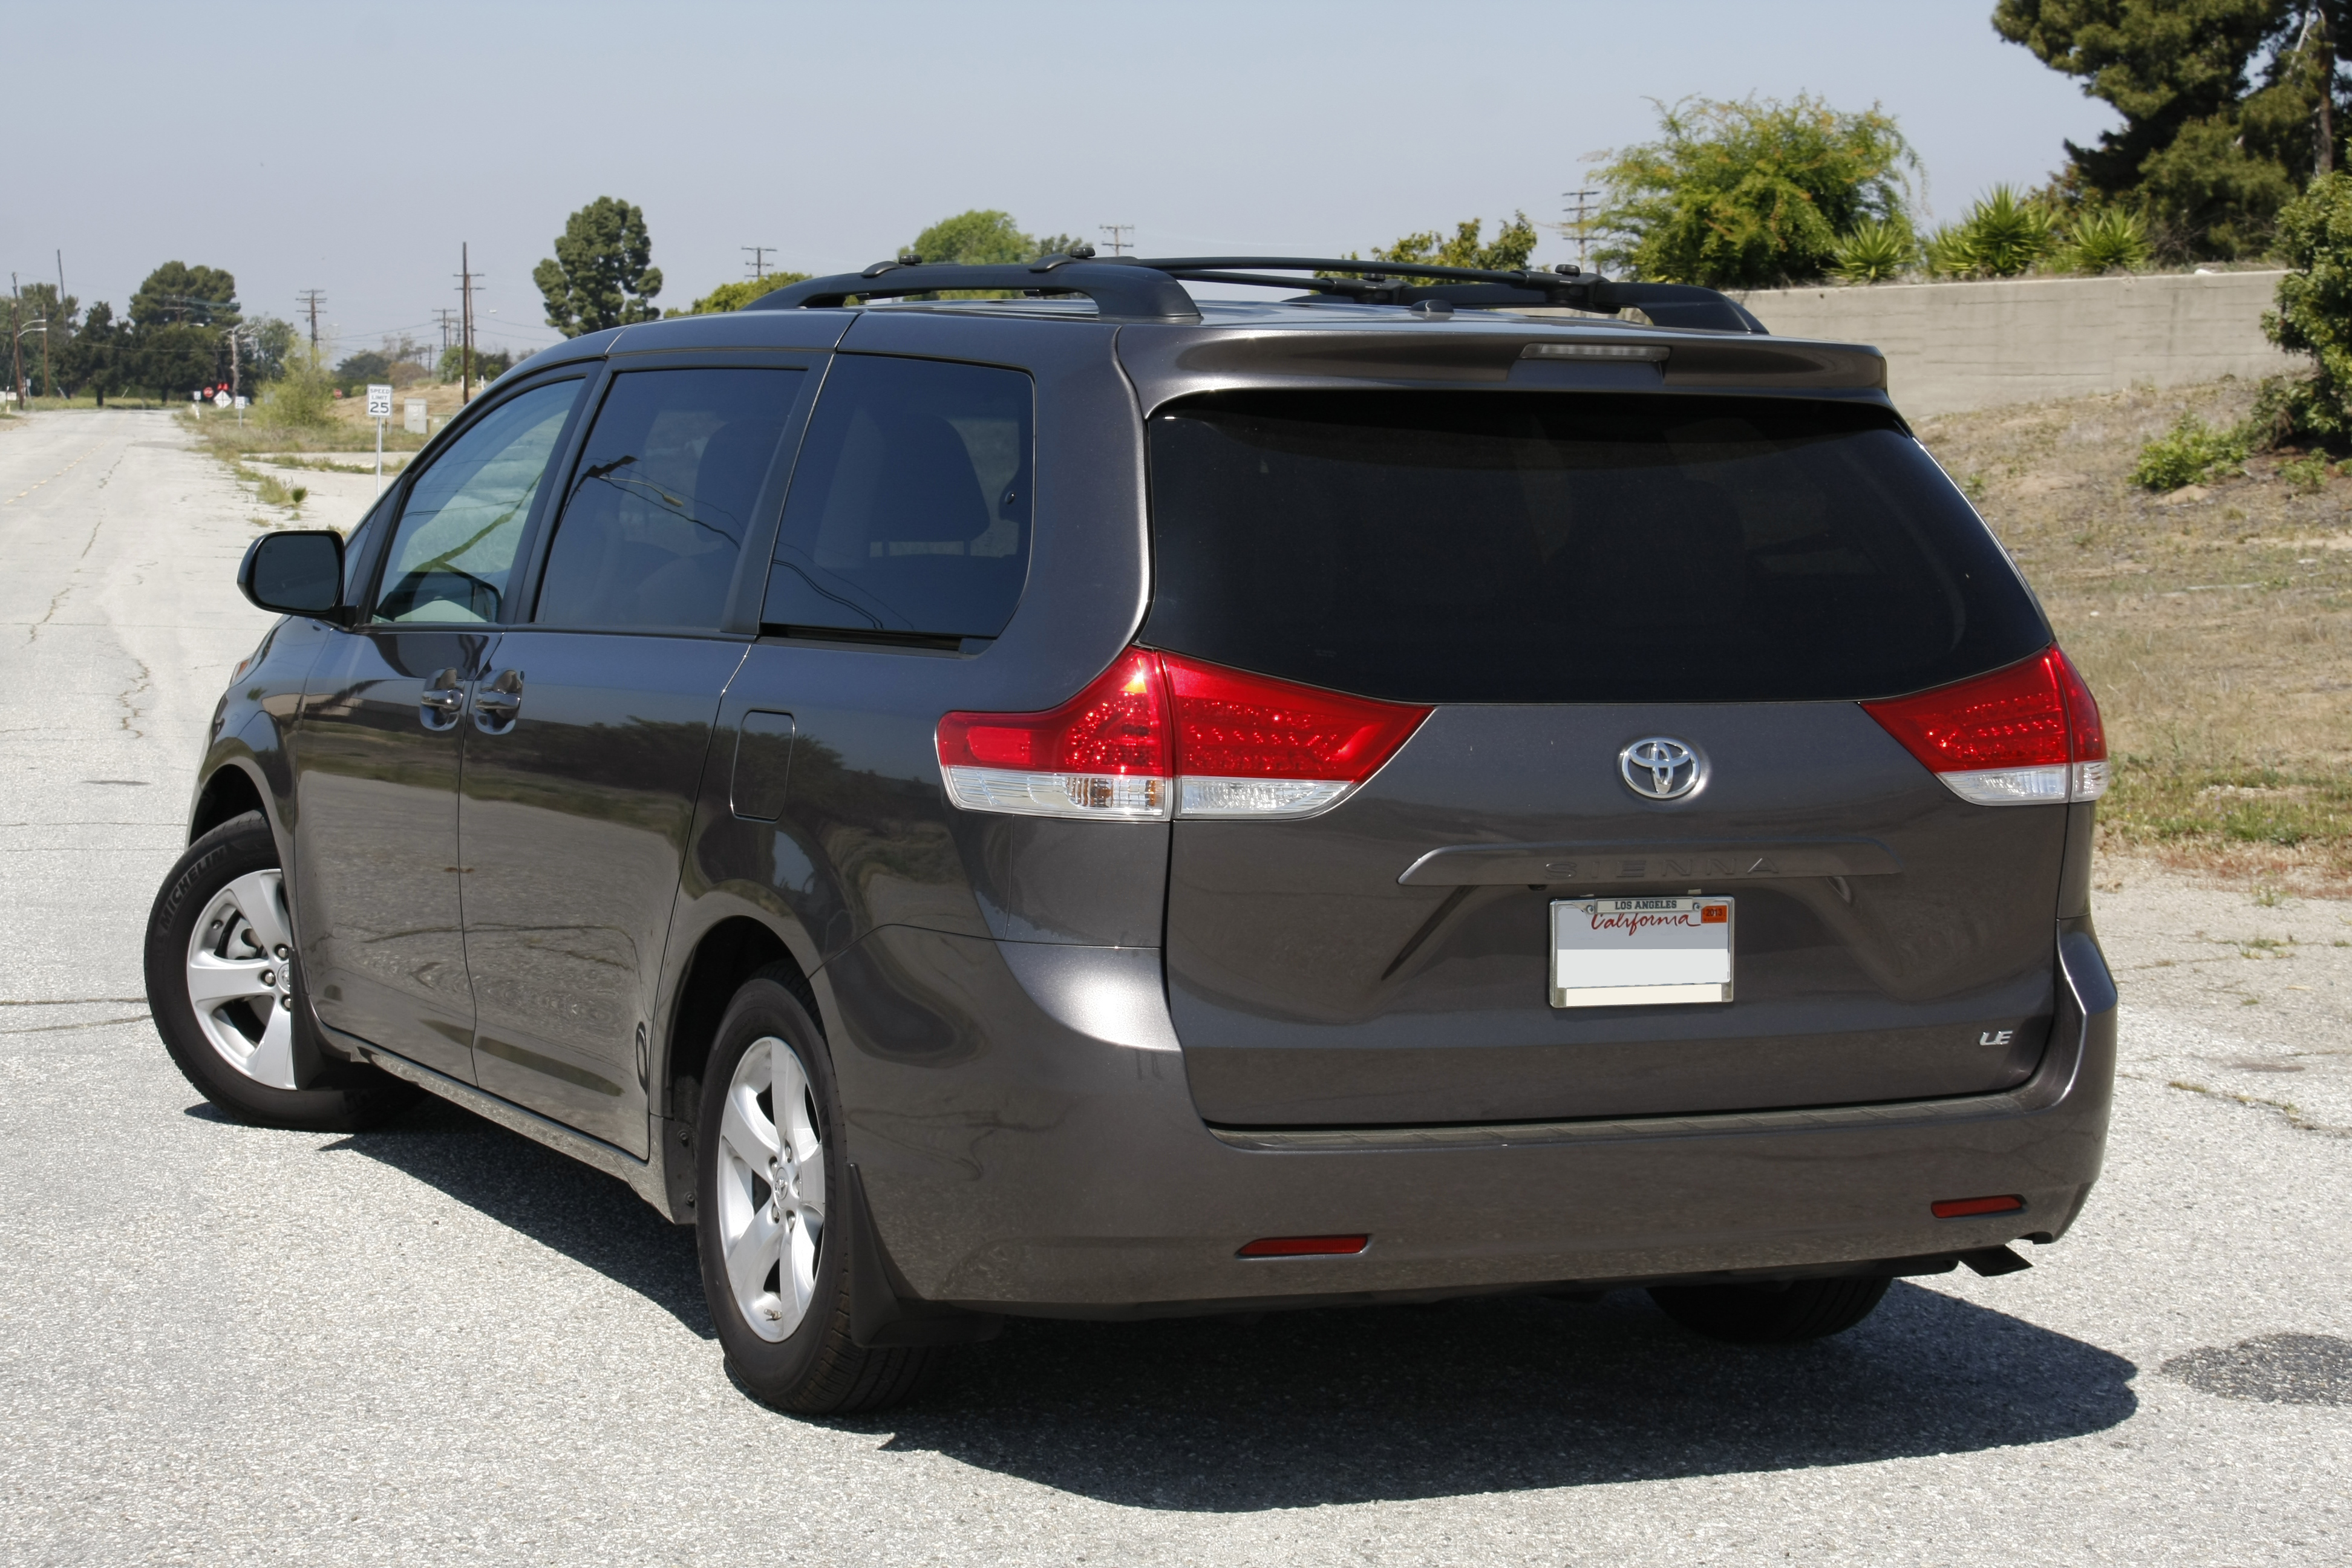 file toyota sienna 2012 jpg wikimedia commons. Black Bedroom Furniture Sets. Home Design Ideas